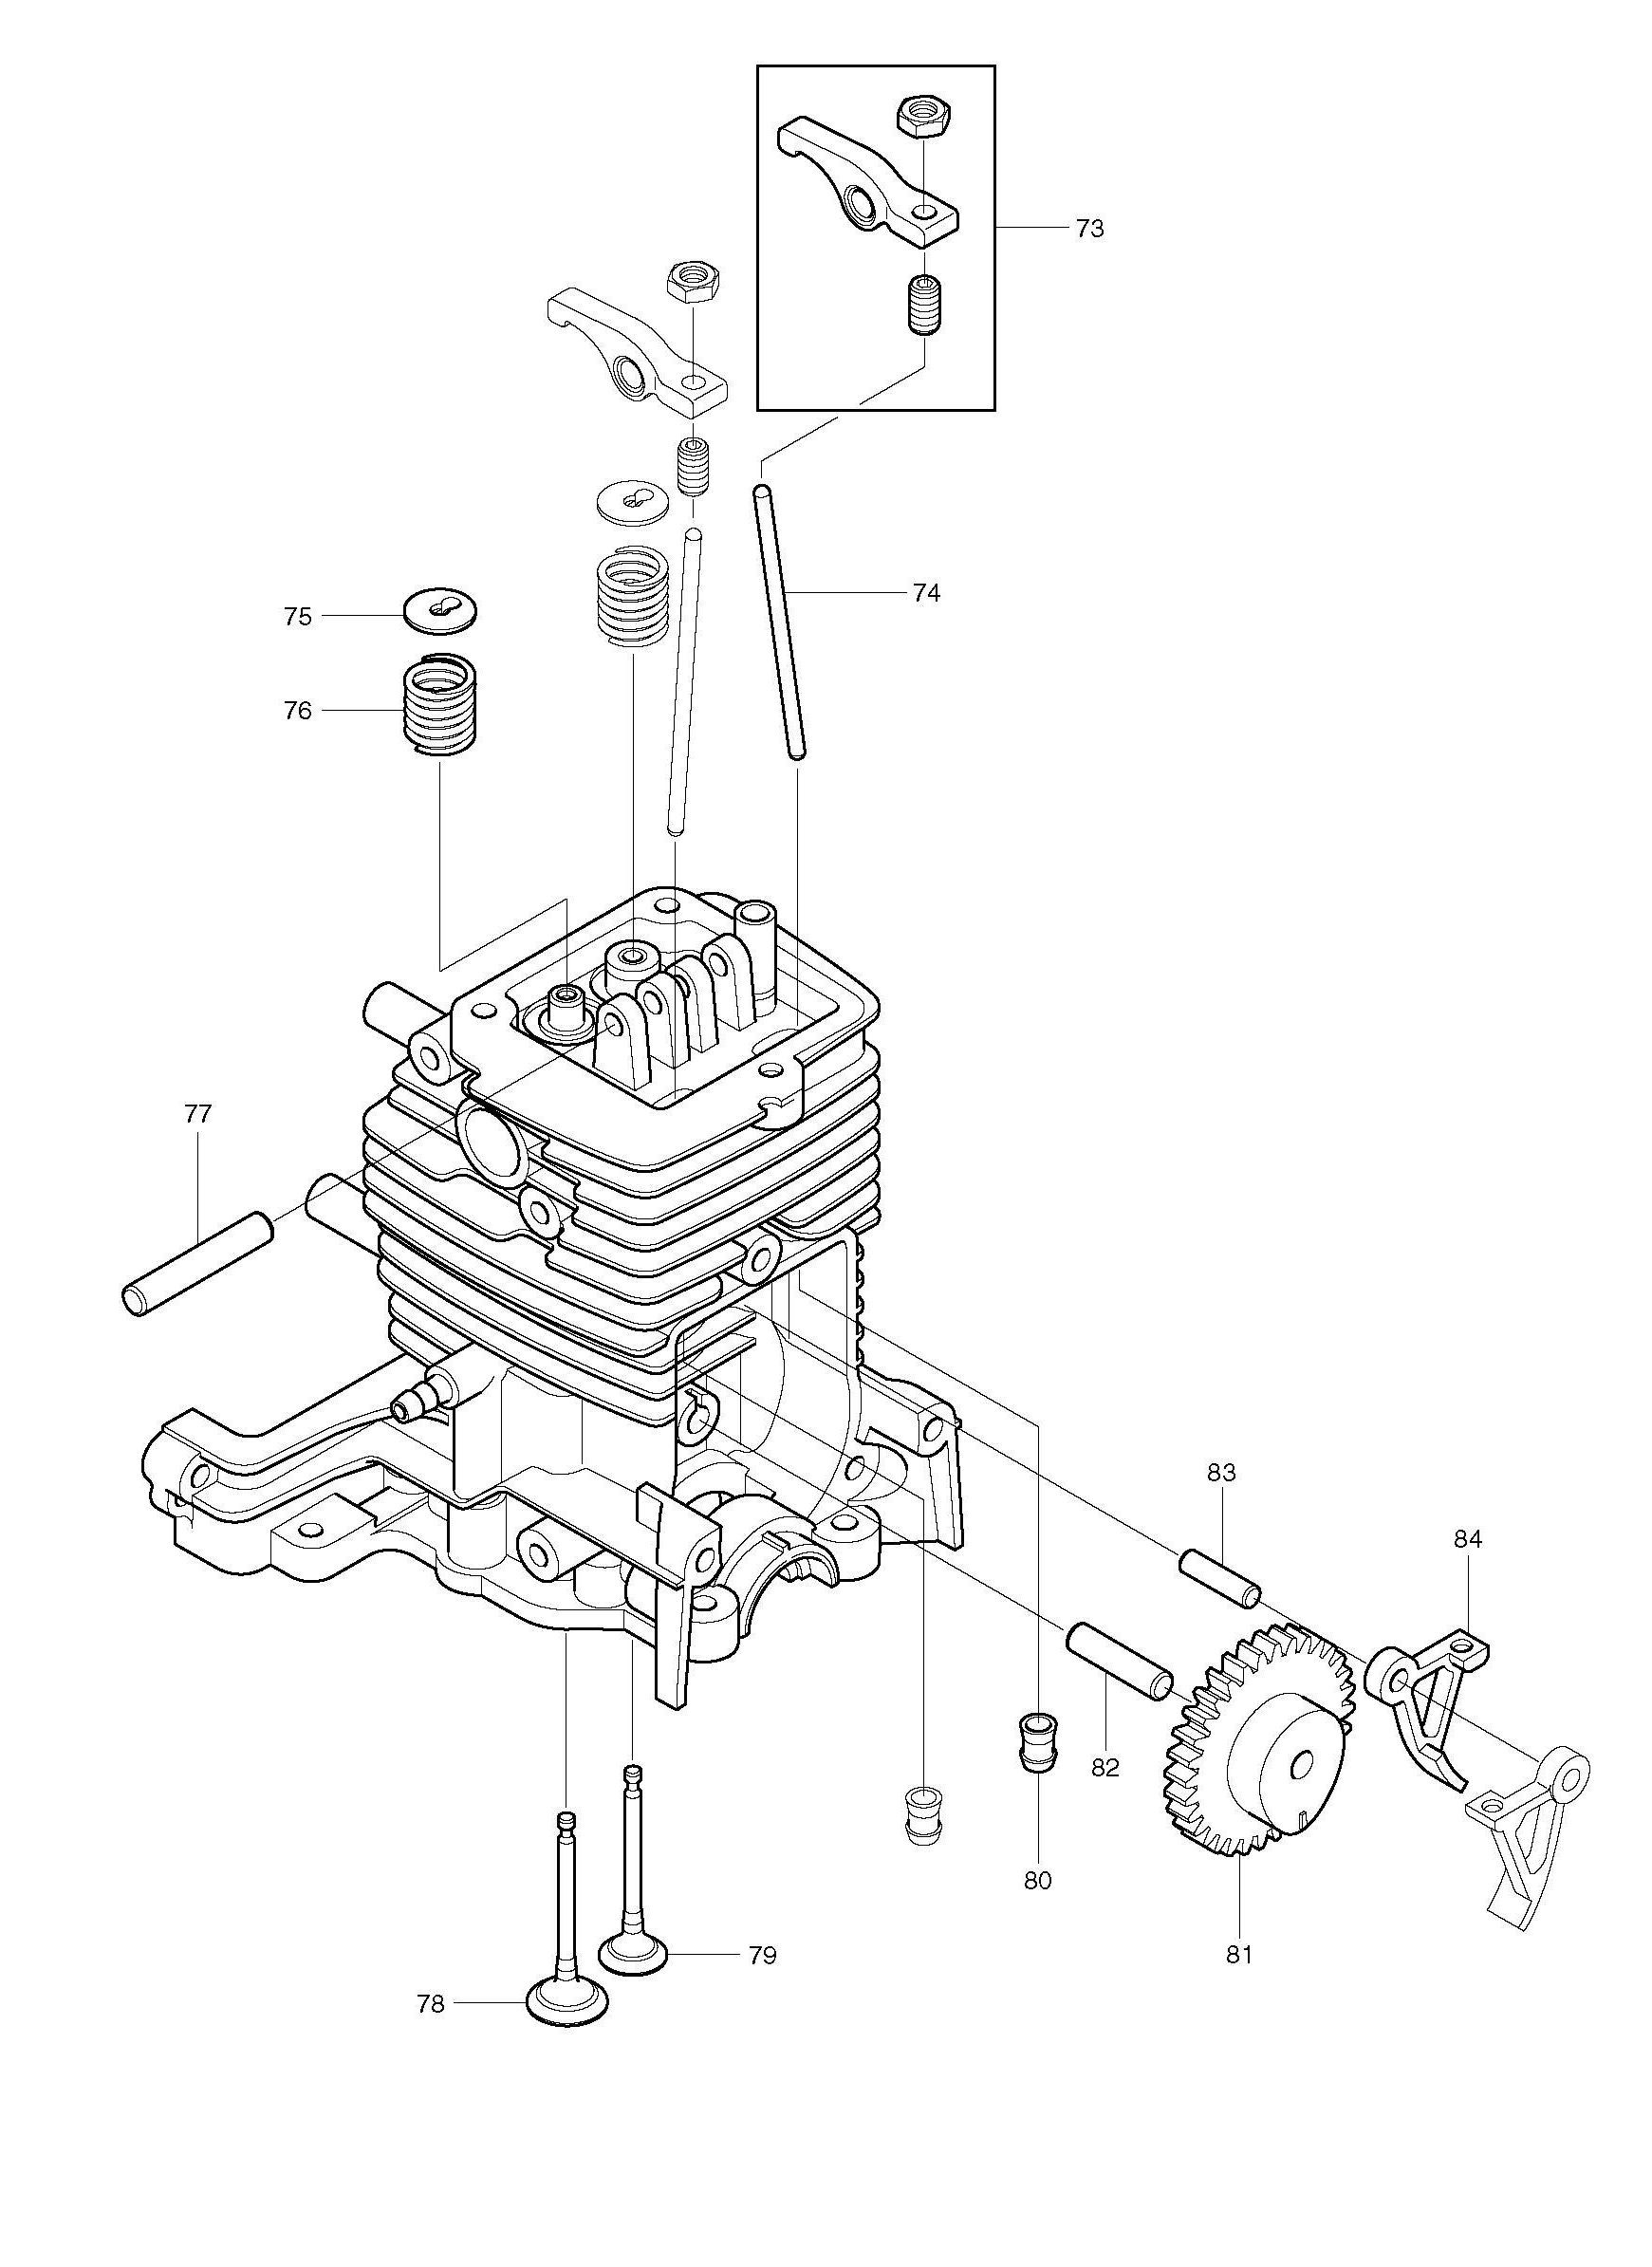 Diagram Of Four Stroke Petrol Engine Spares for Makita Bhx2500 4 Stroke Petrol Blower Spare Bhx2500 From